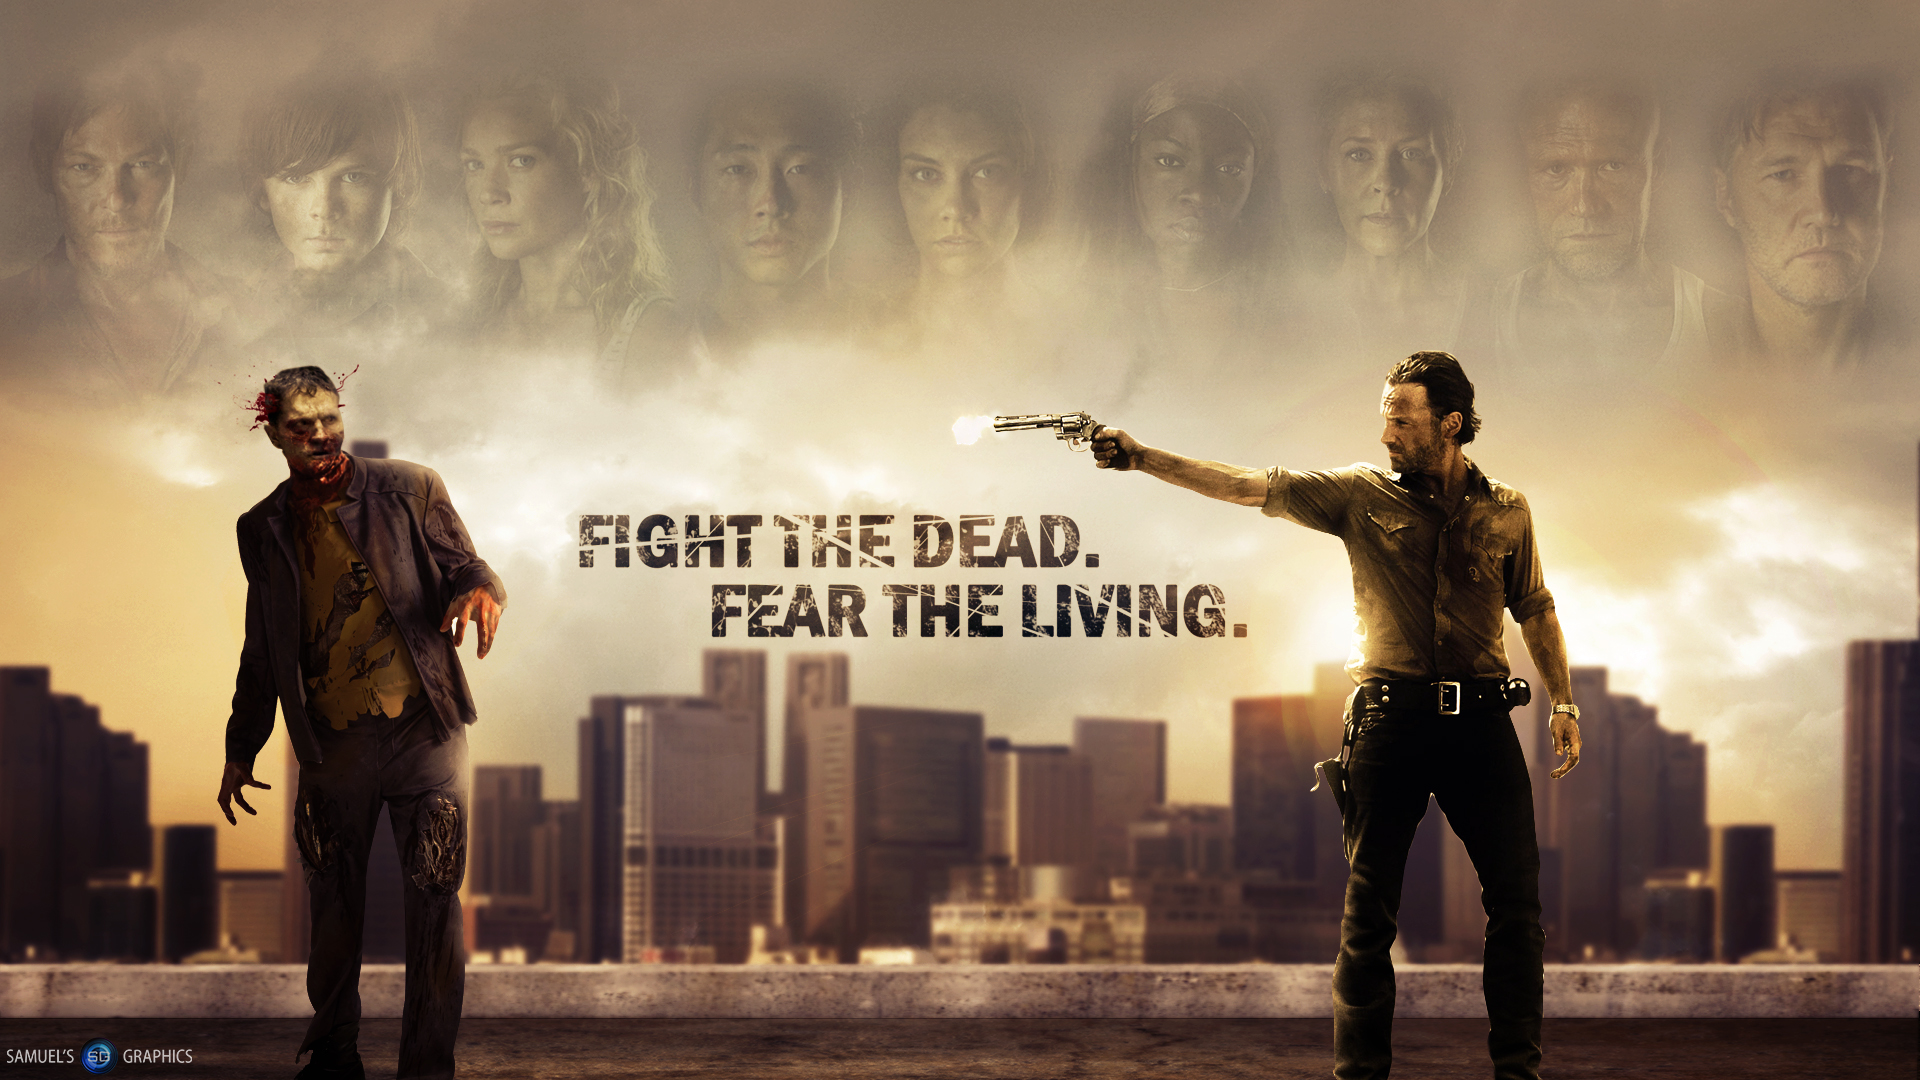 47 The Walking Dead Laptop Wallpaper On Wallpapersafari